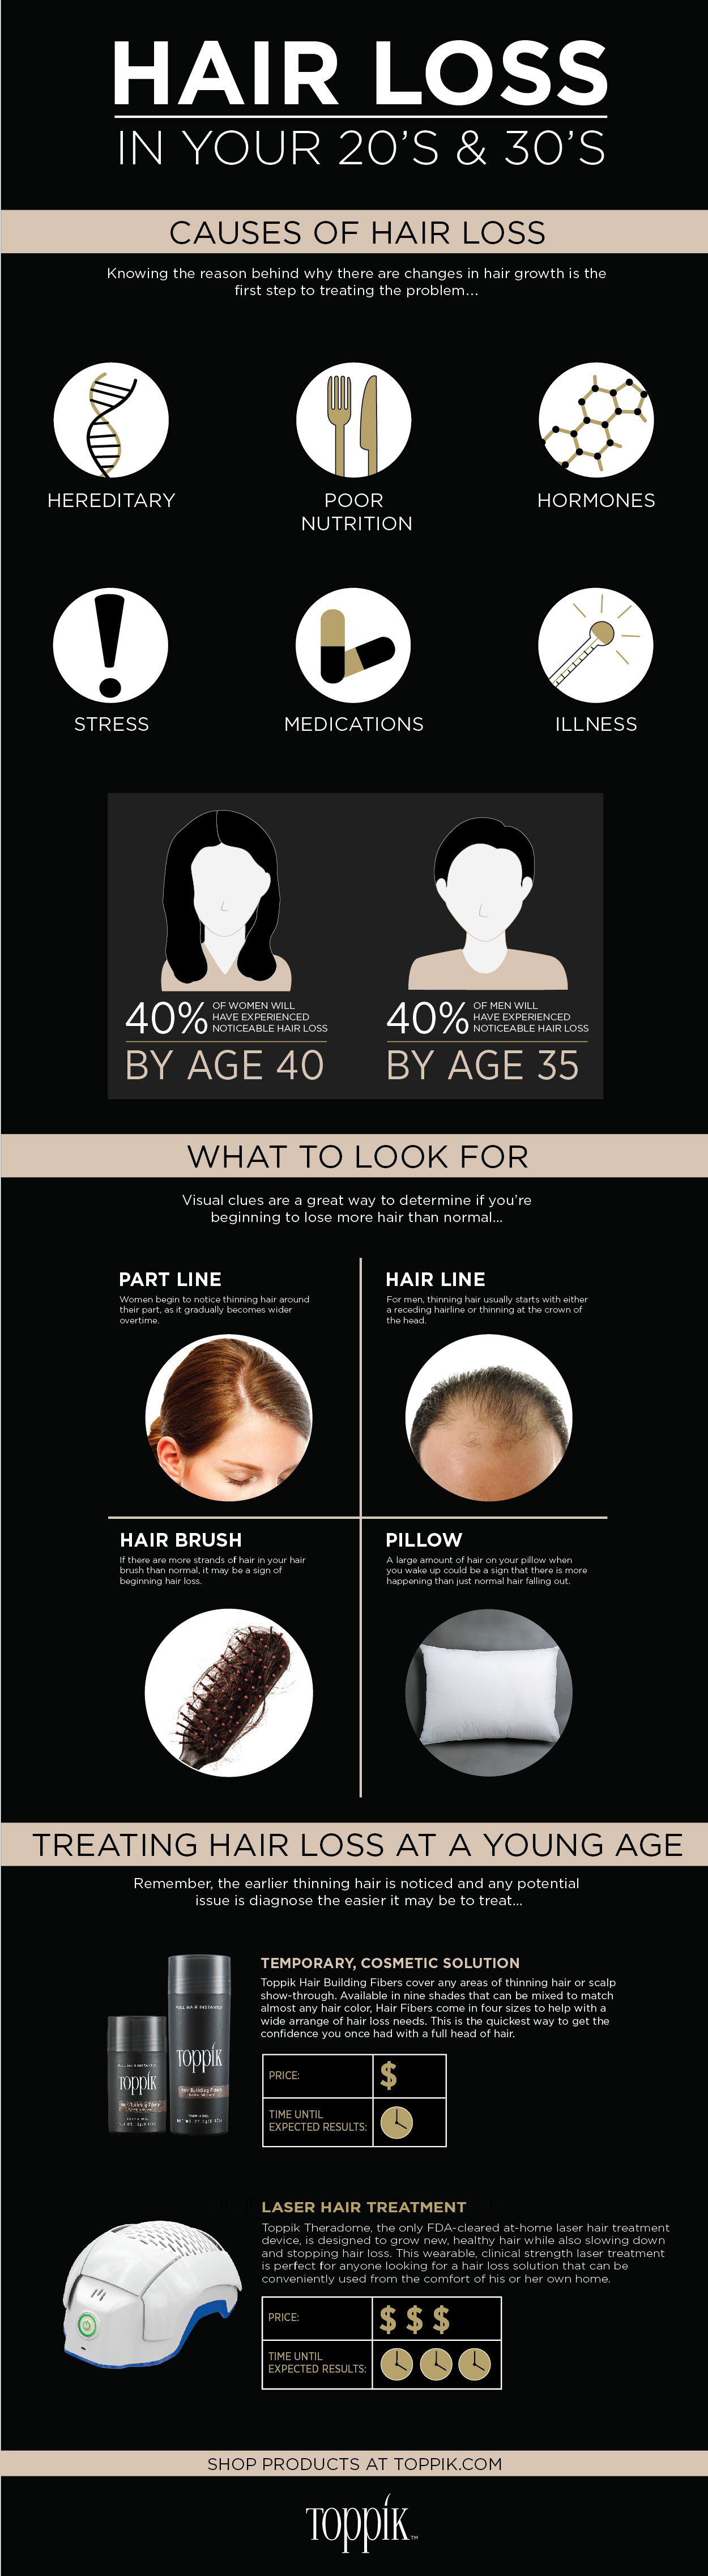 What causes hair loss infographic